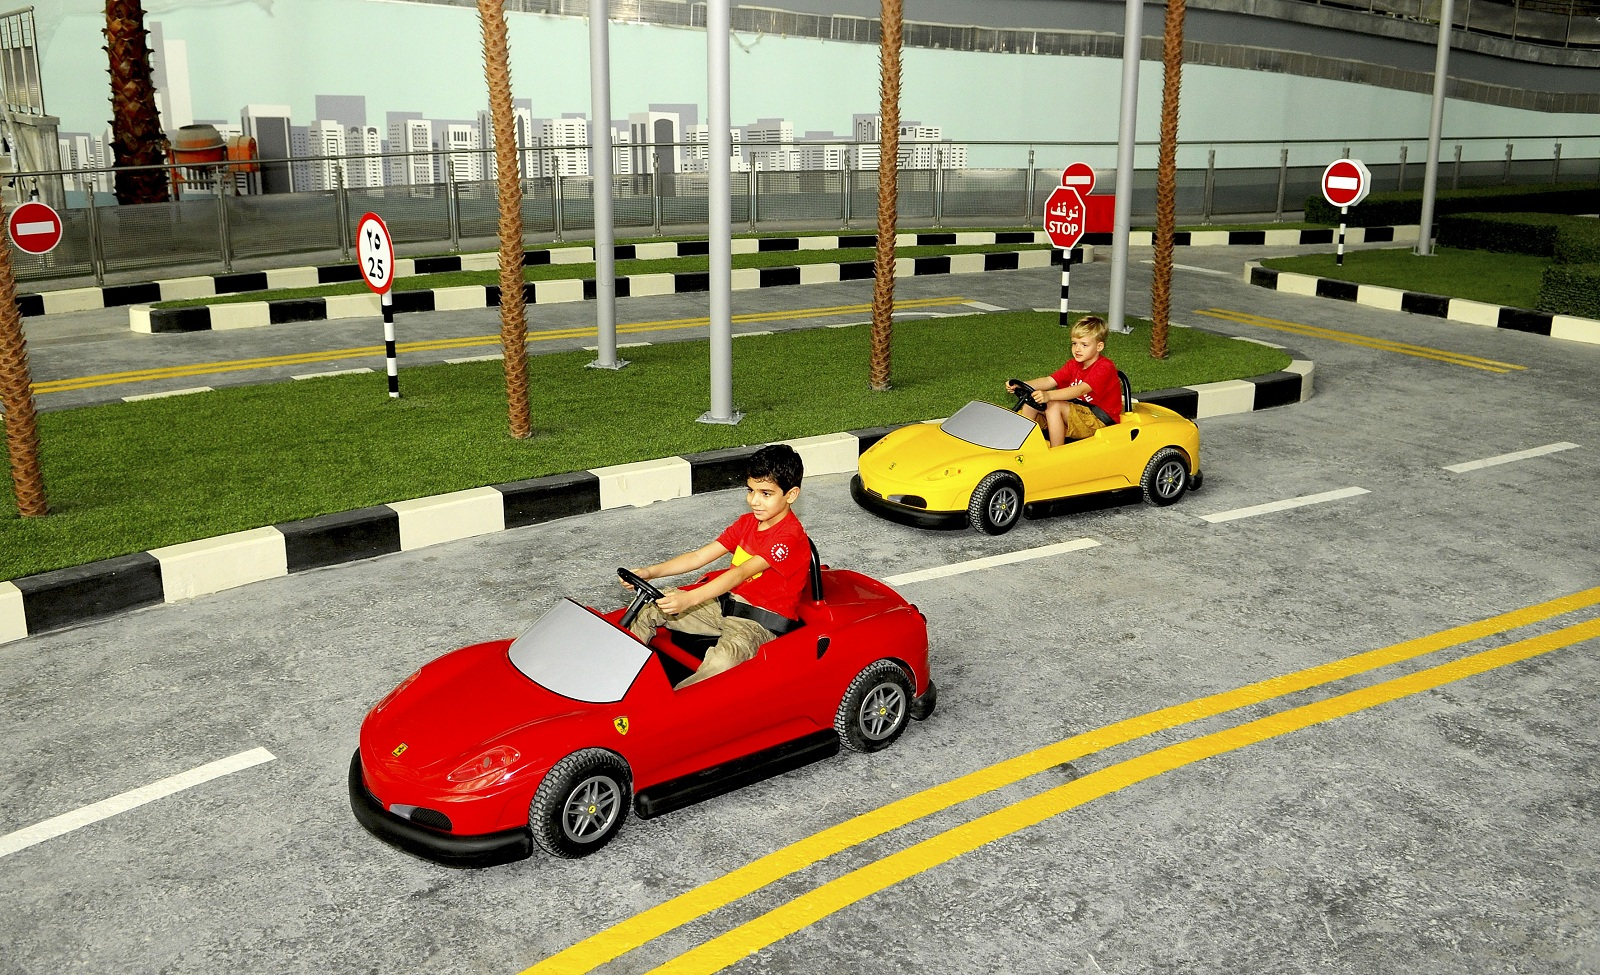 strangest theme park abu dhabi uae ferrari world kids car racing